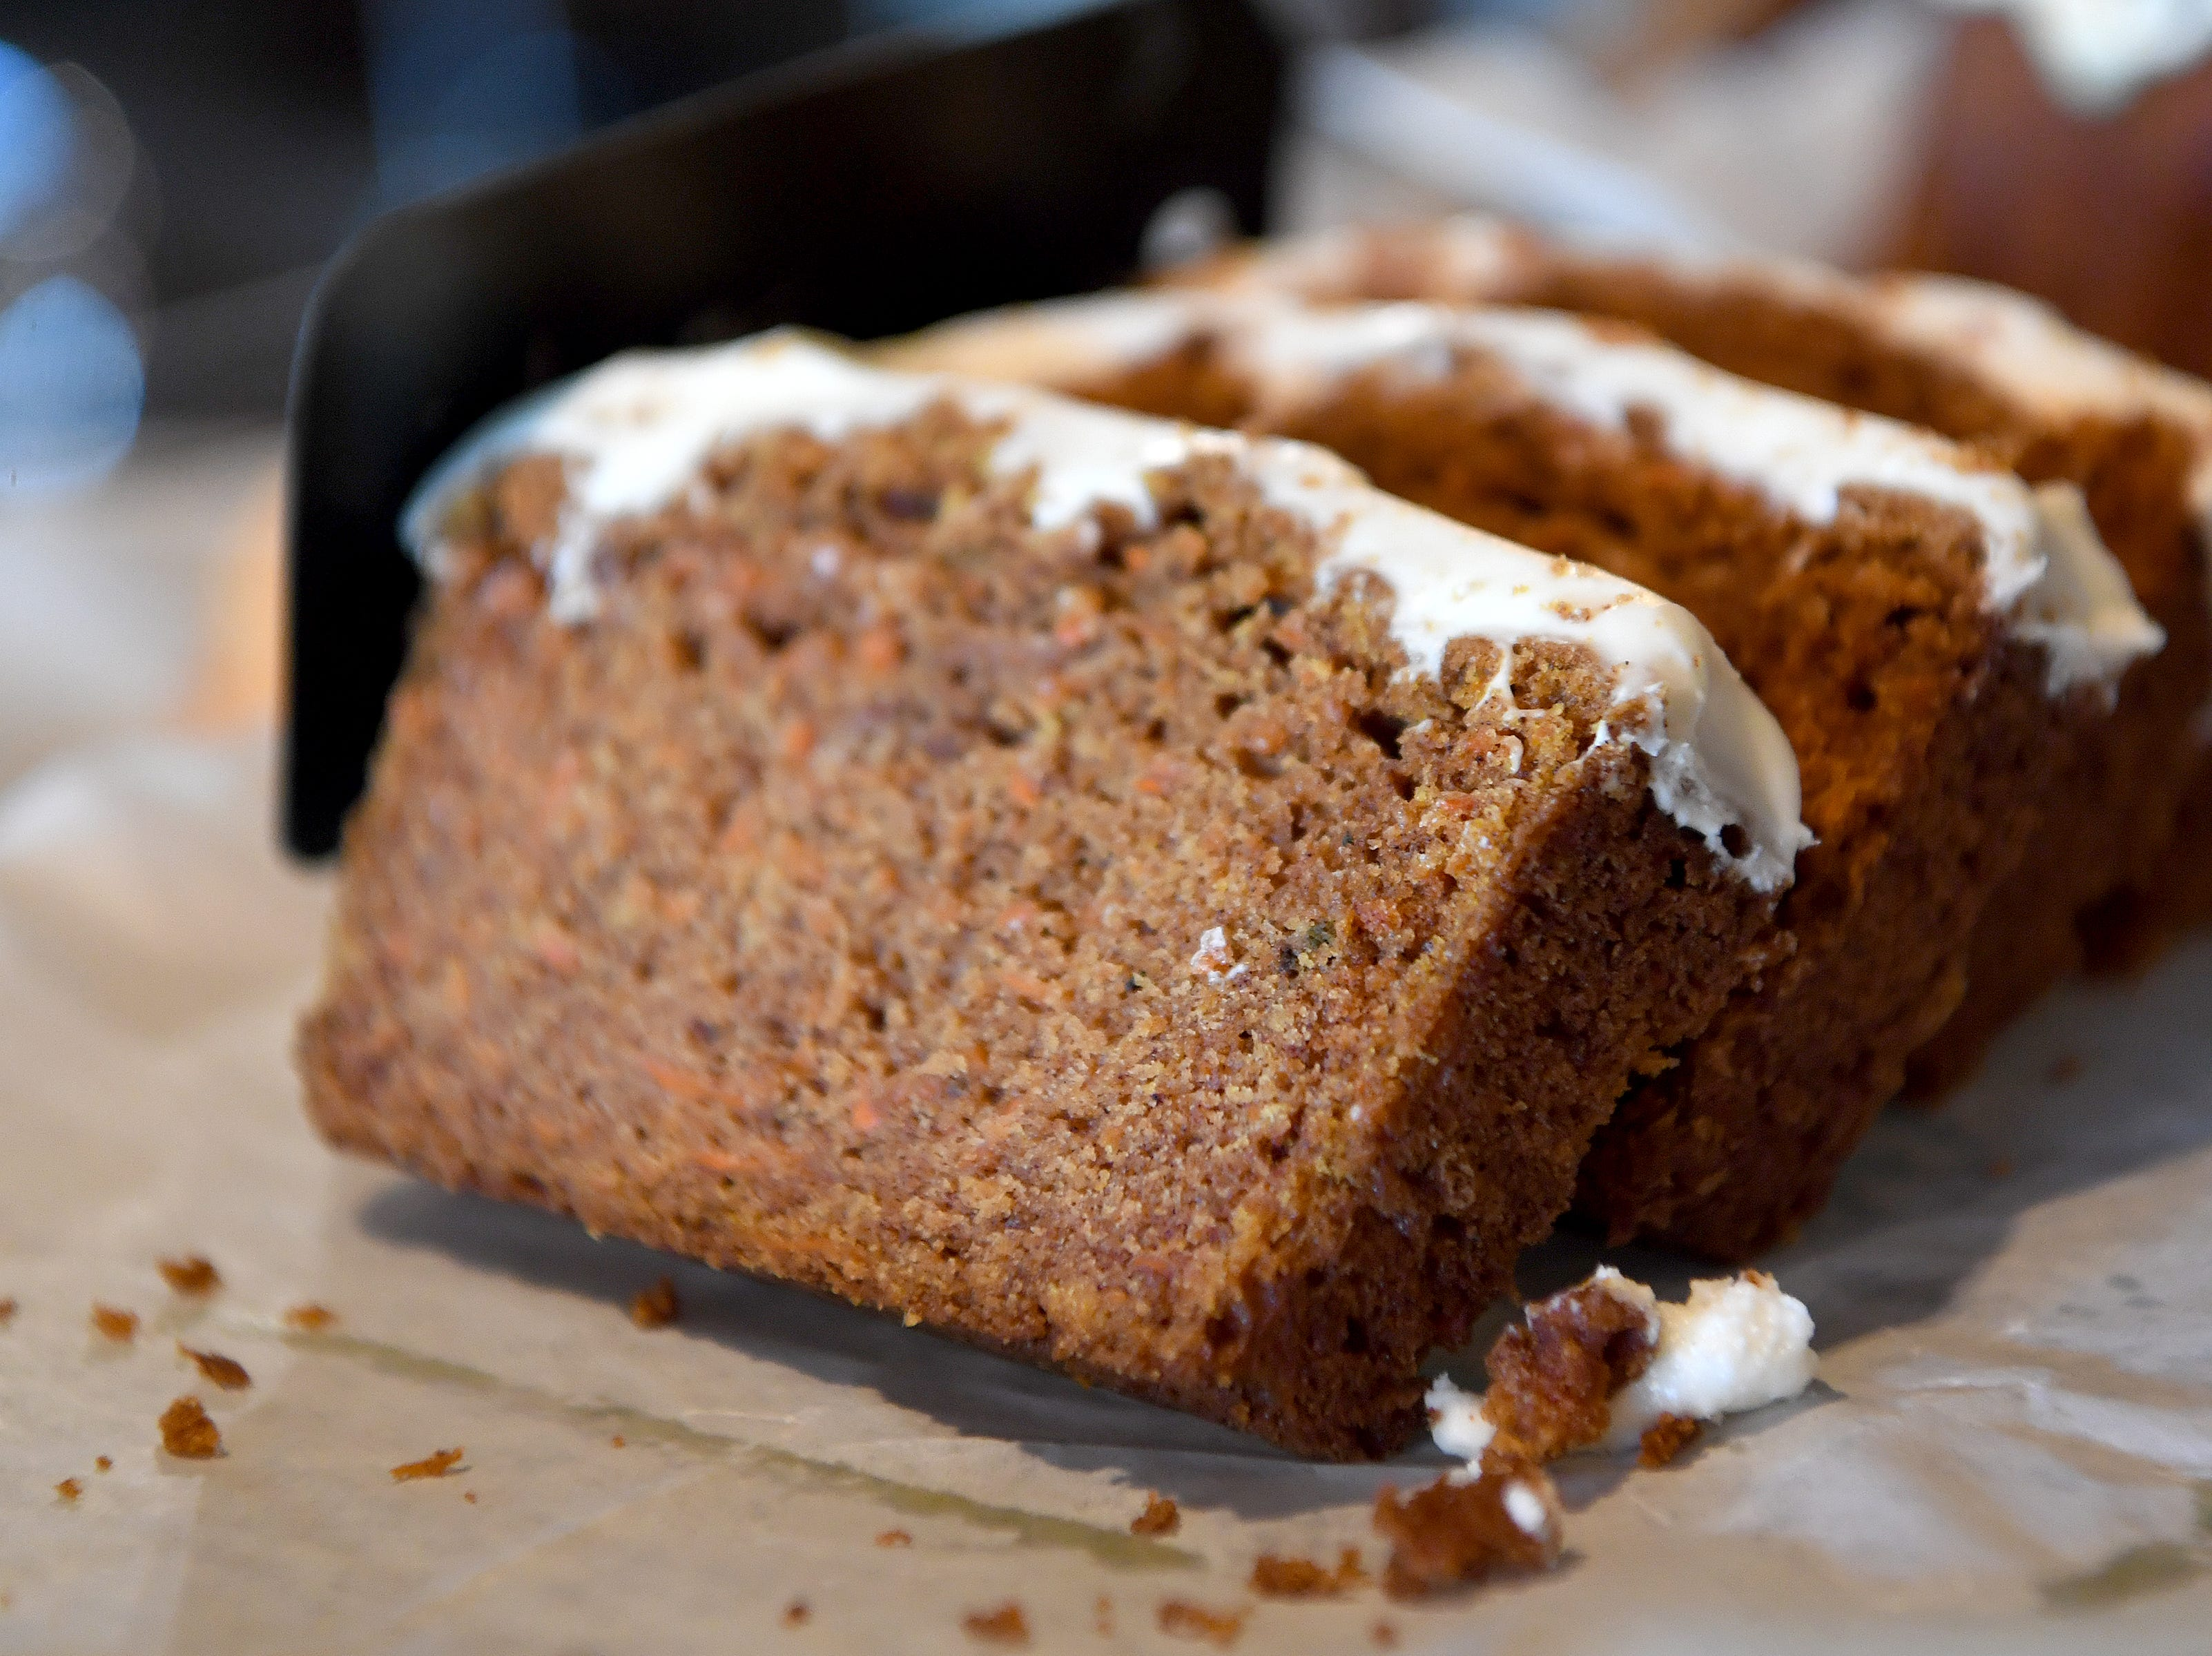 The carrot cake bread at the Beehive Coffee Bar in Arden is topped with a sweet thin layer of icing.